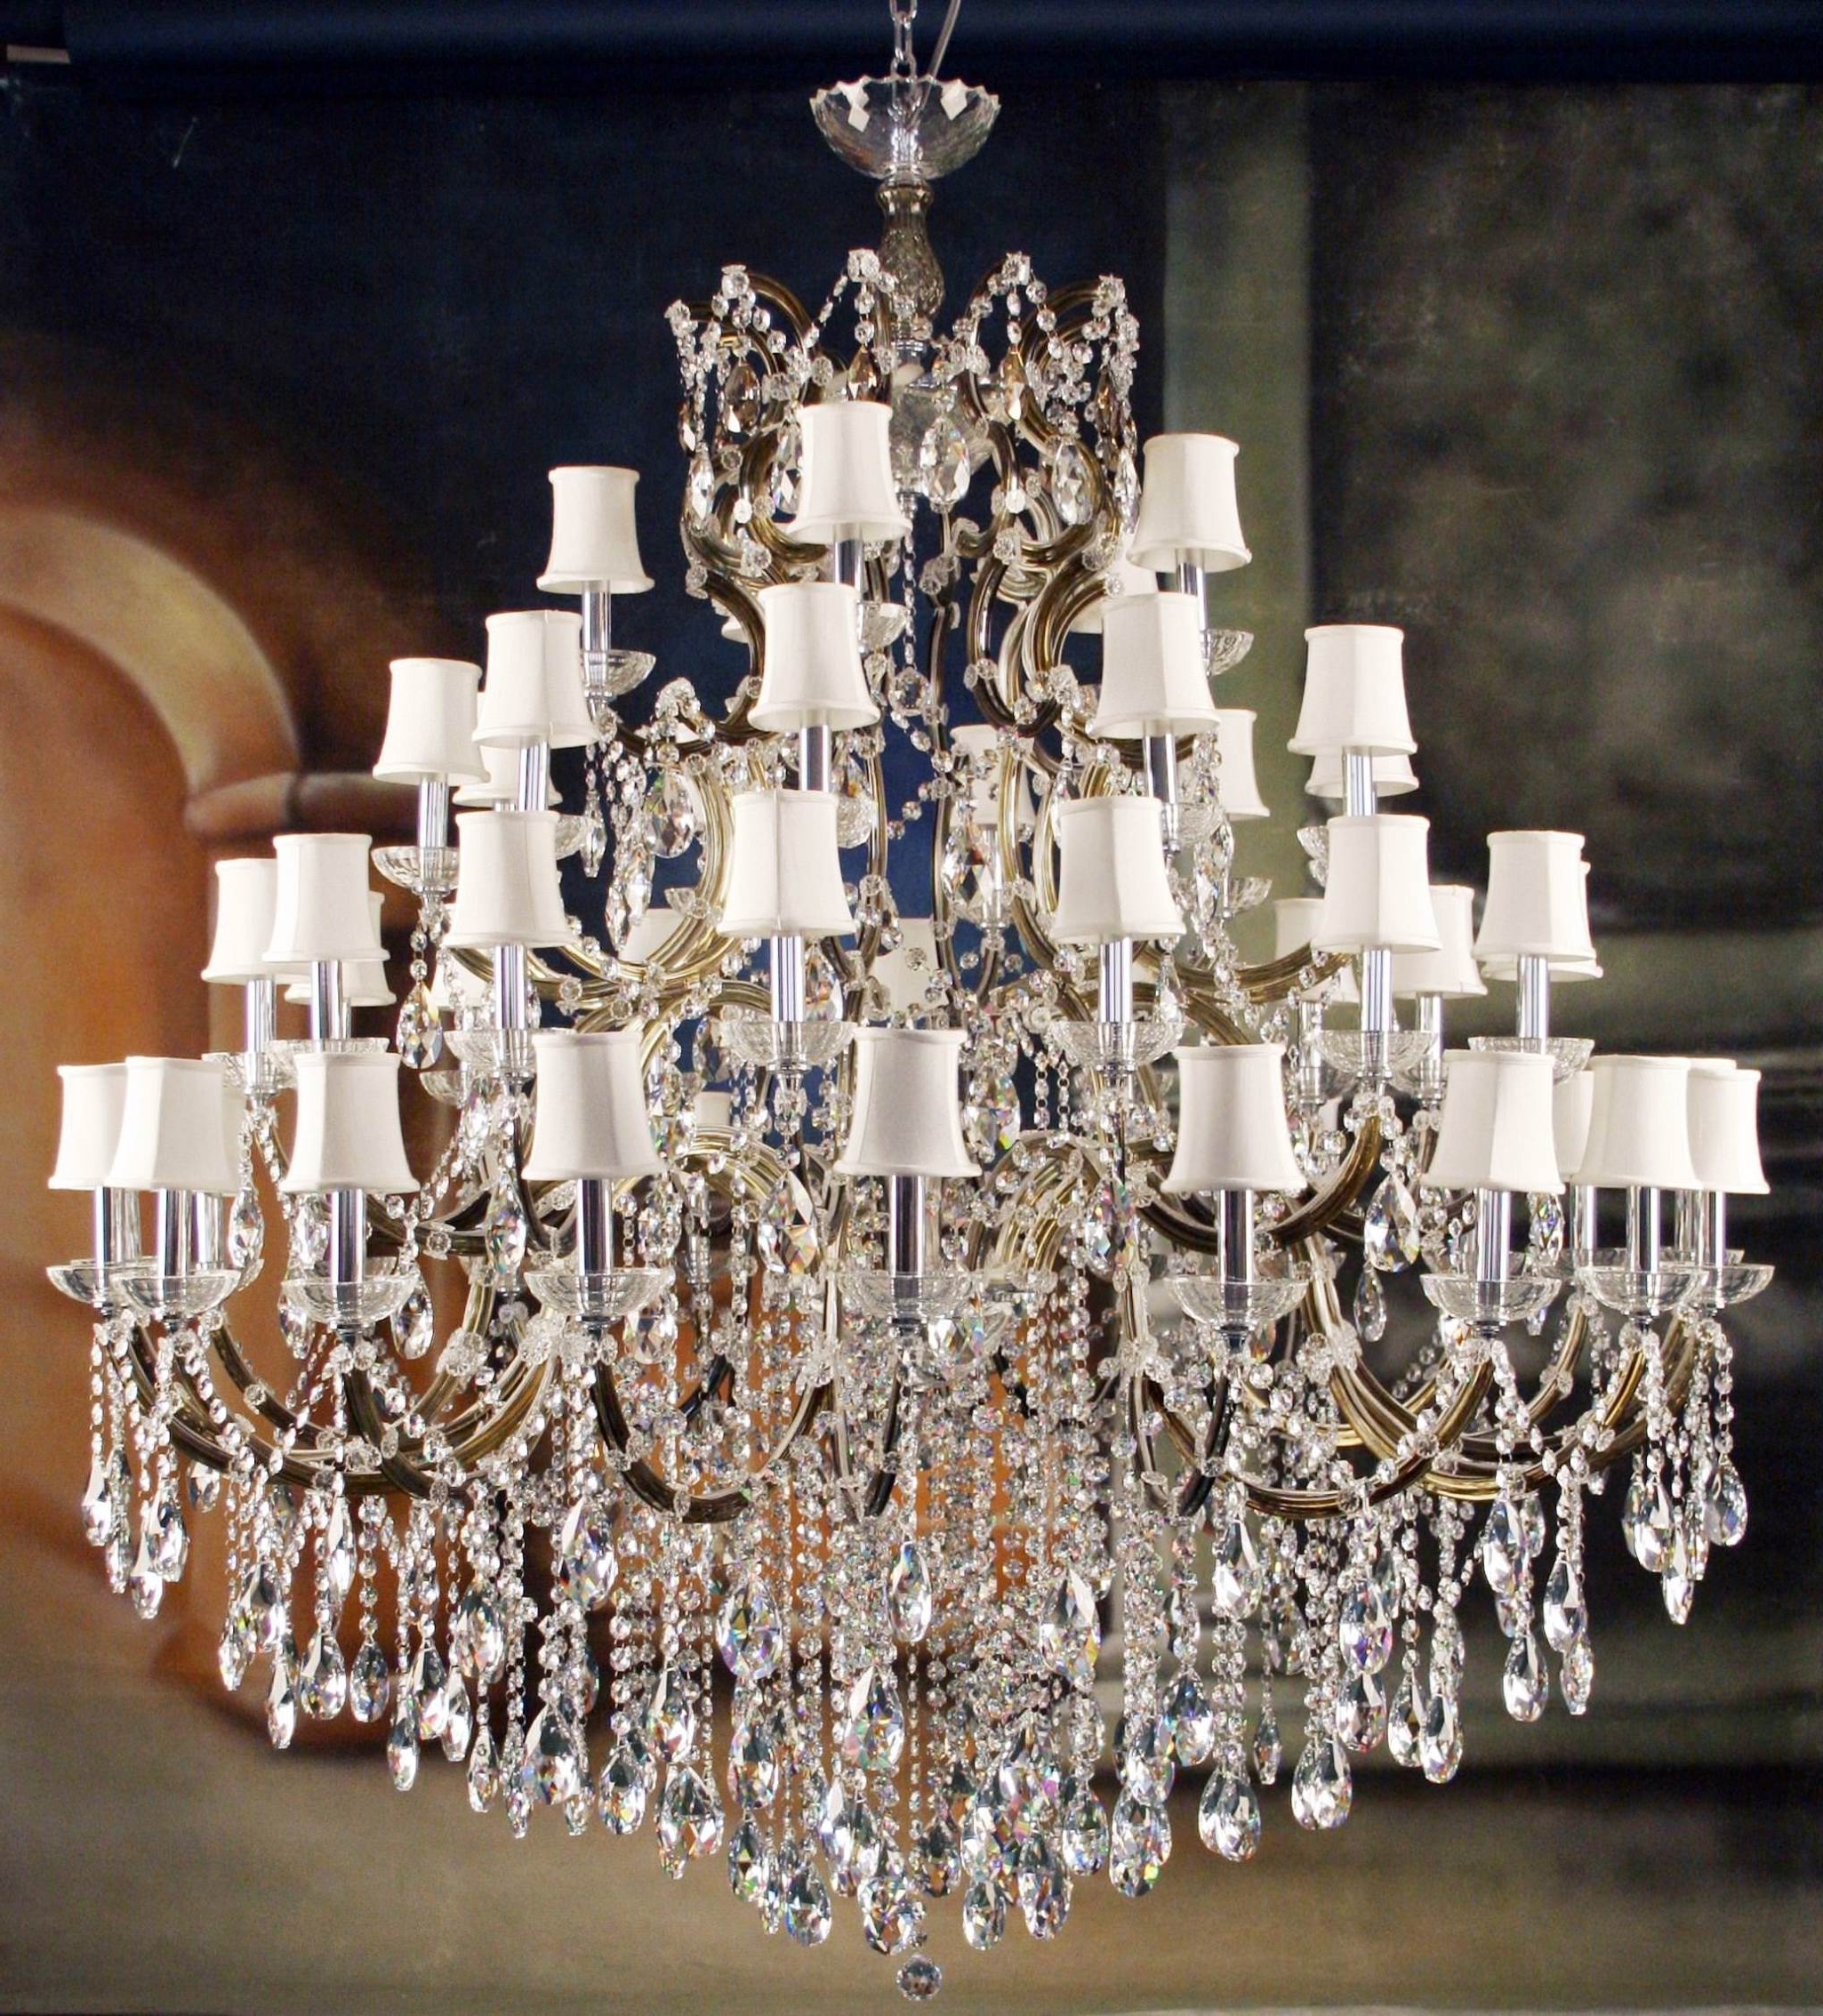 Chandeliers With Lamp Shades With Fashionable Light : Chandelier Store Kichler Vanity Lights For Kids Room (View 7 of 20)